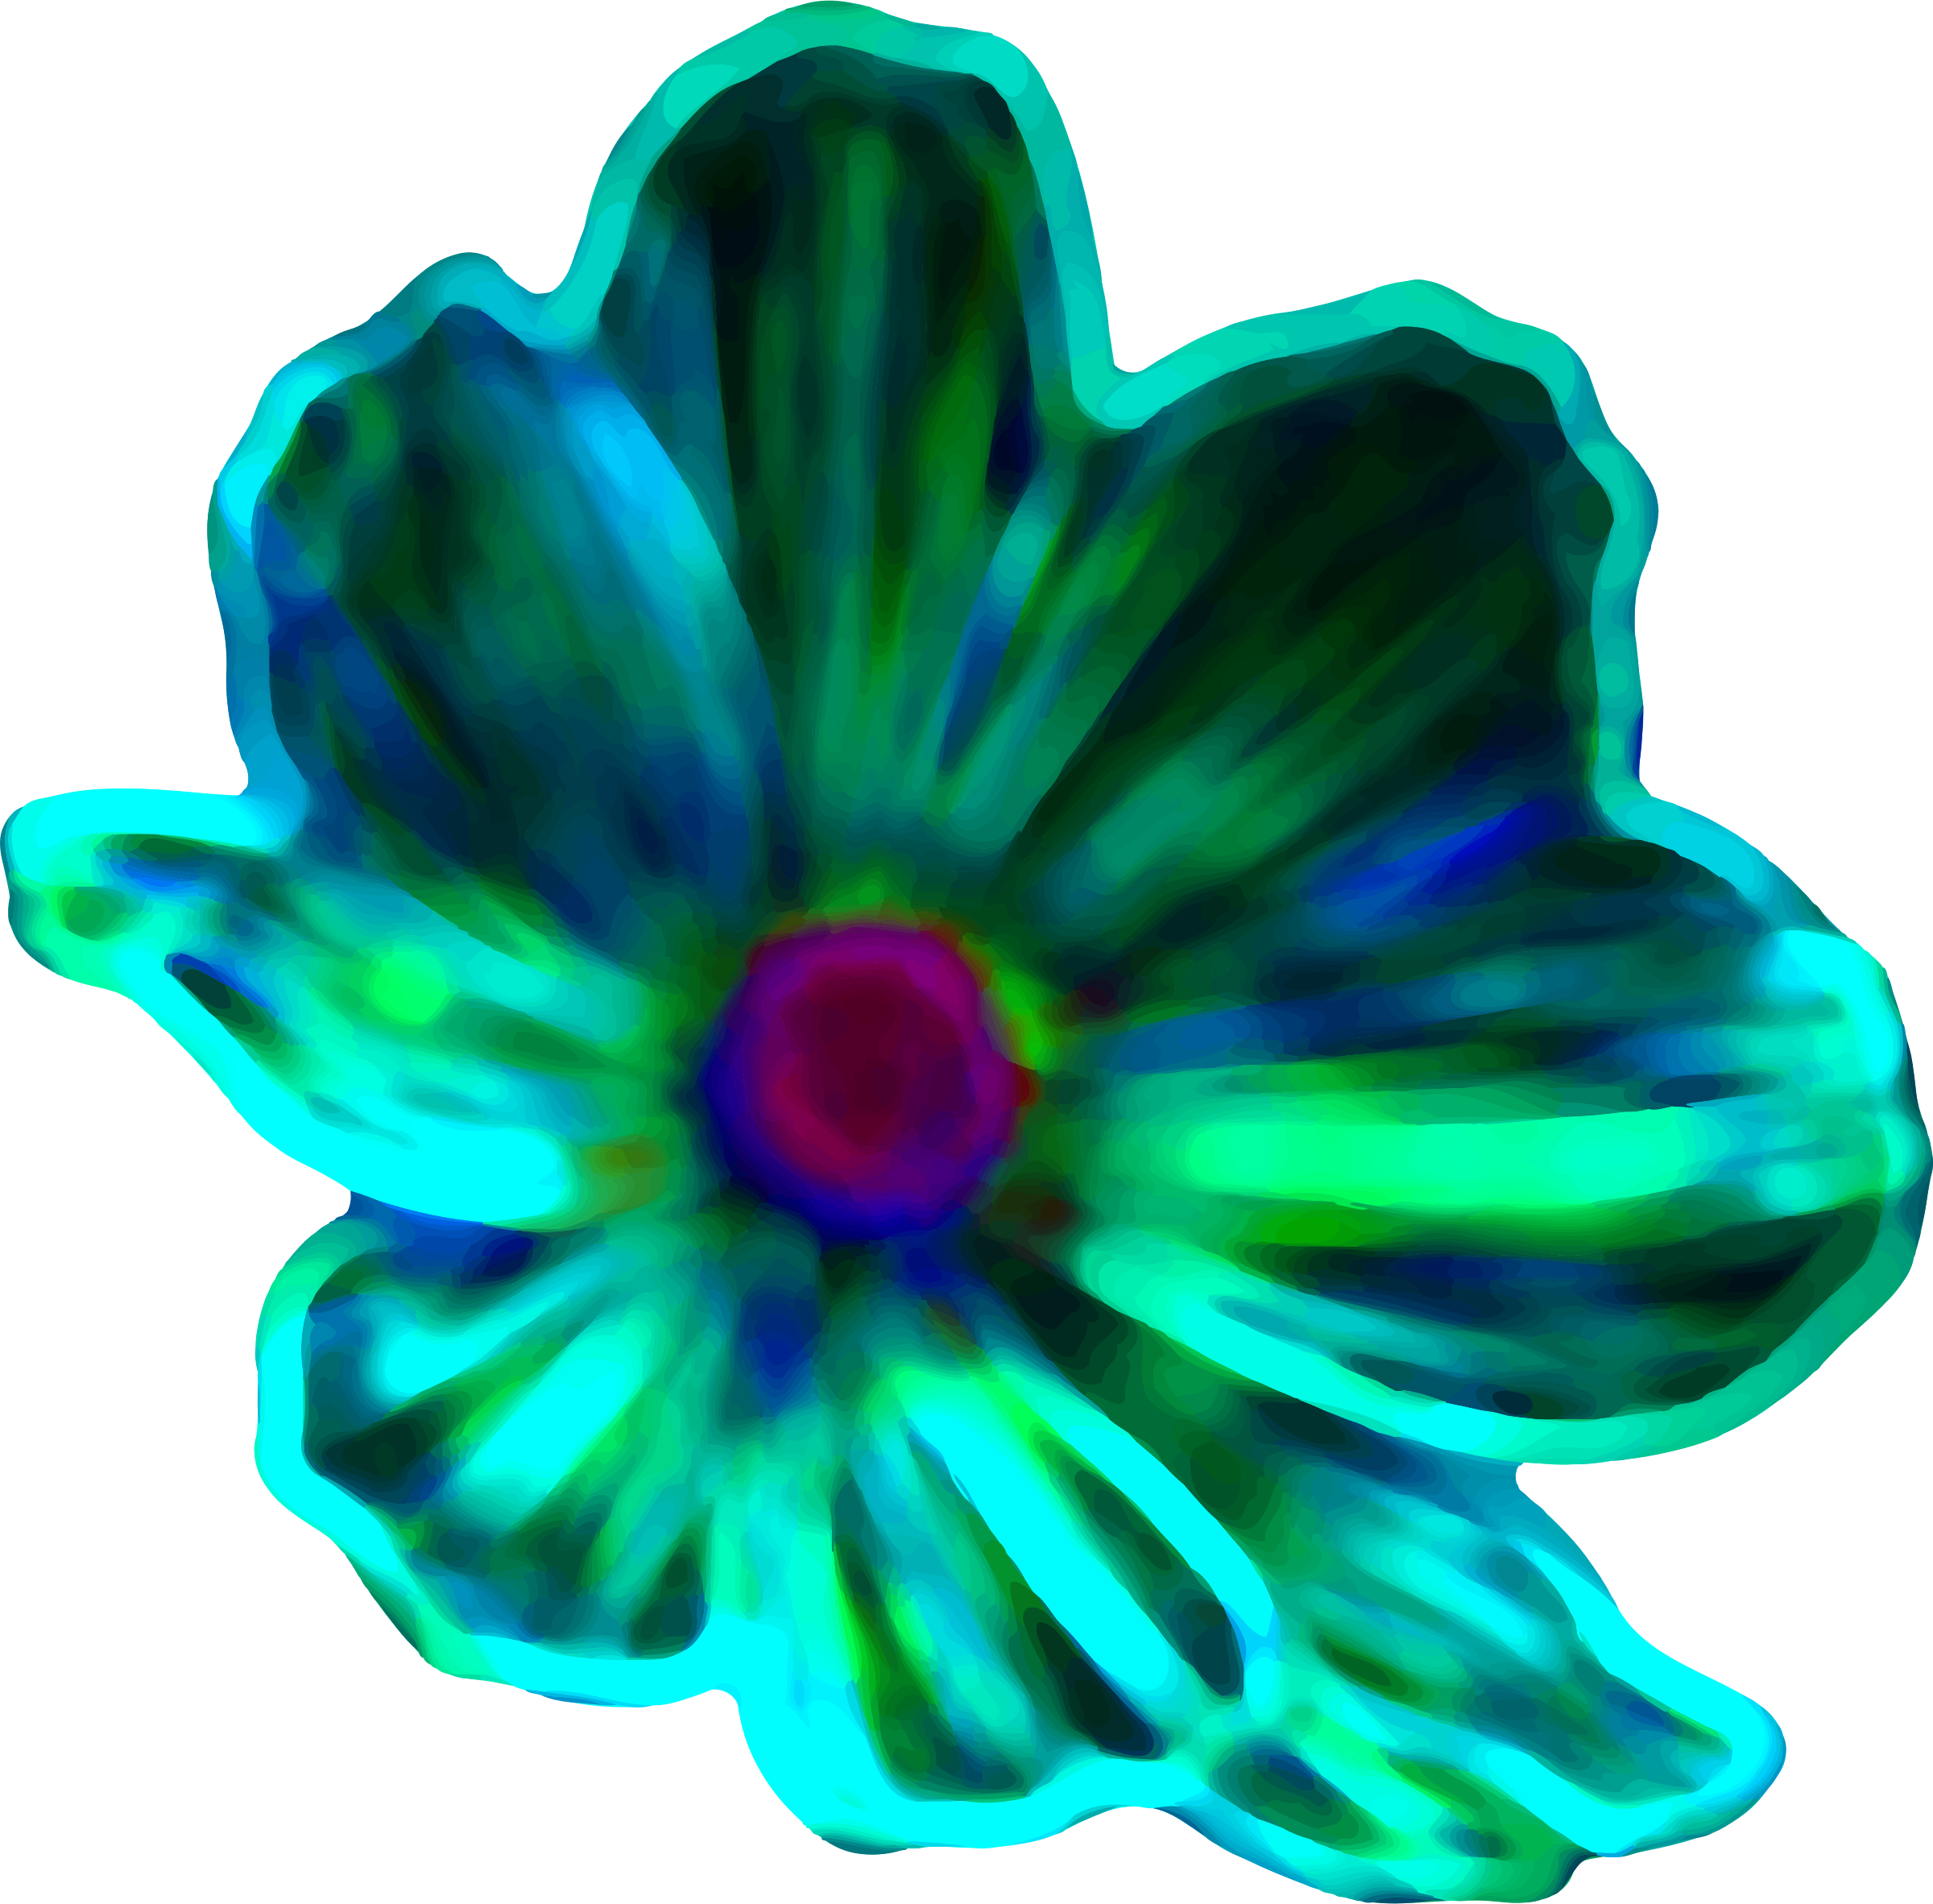 Neon flower (colour 3) by Firkin